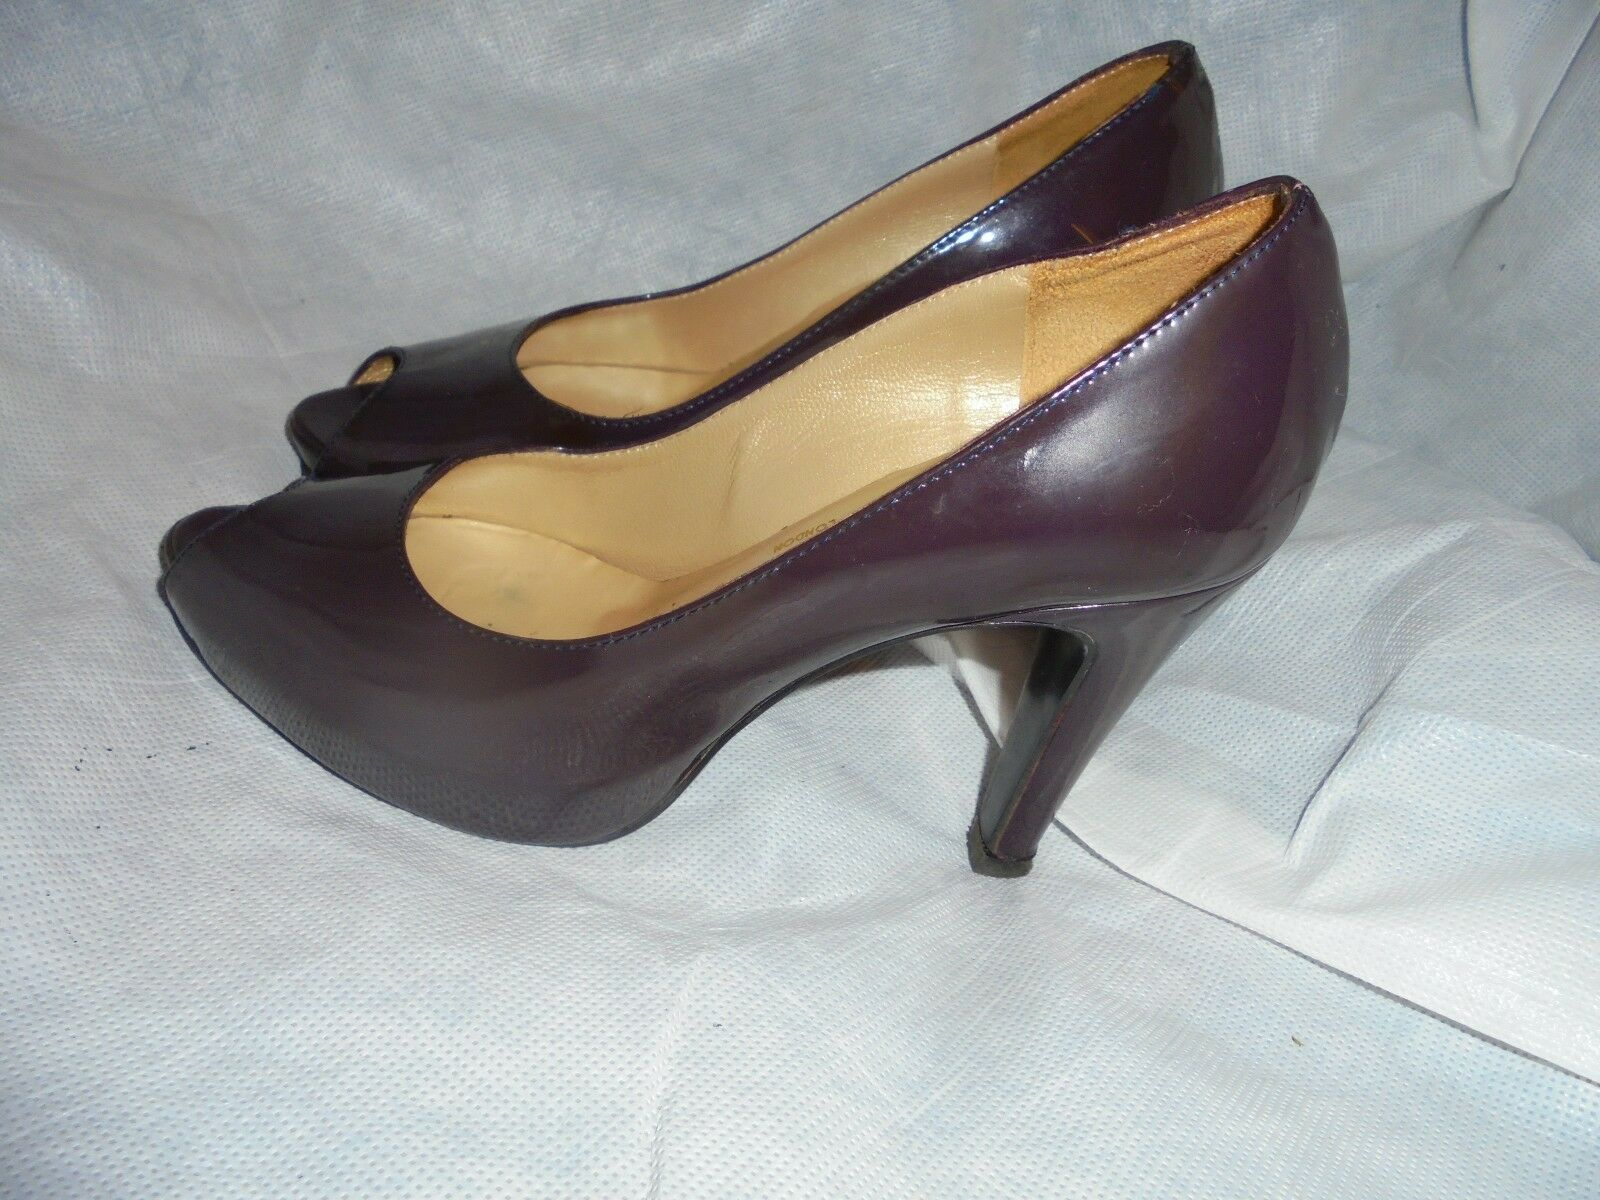 RUSSELL & BROMLEY Damenss MAROON LEATHER SLIP ON PEEP TOE SHOE SIZE UK 3 EU 35.5